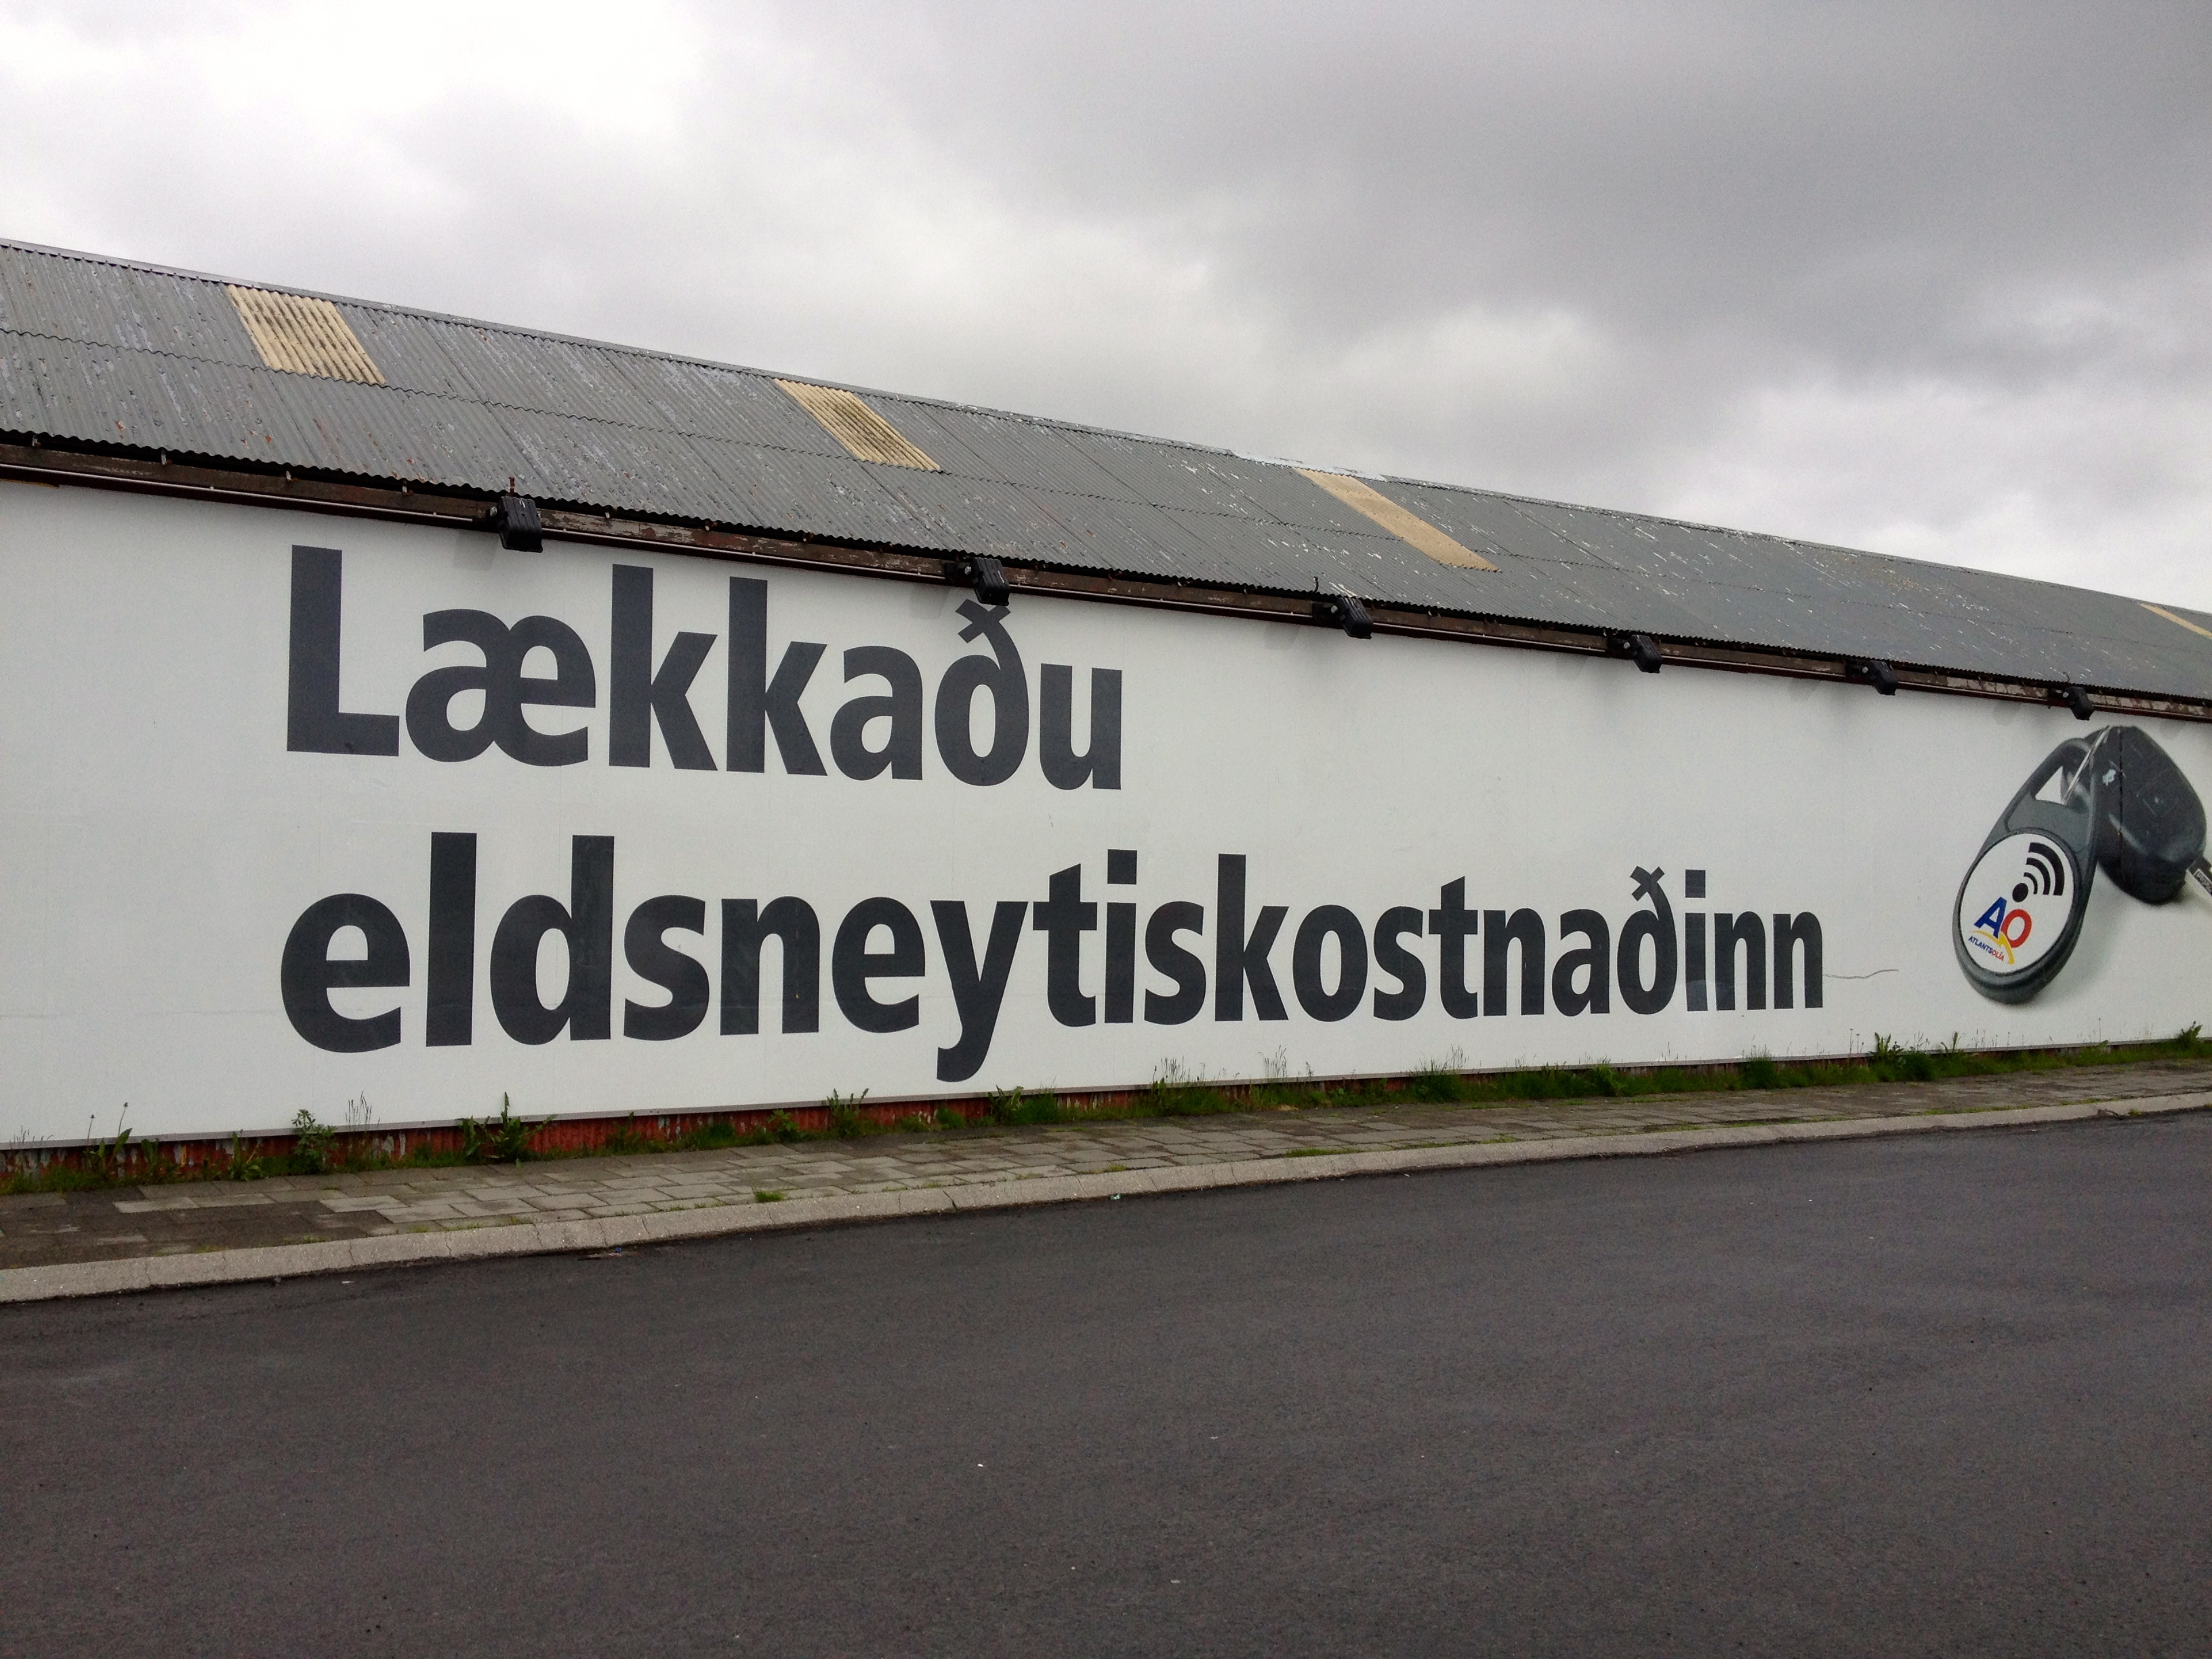 Sign in Icelandic